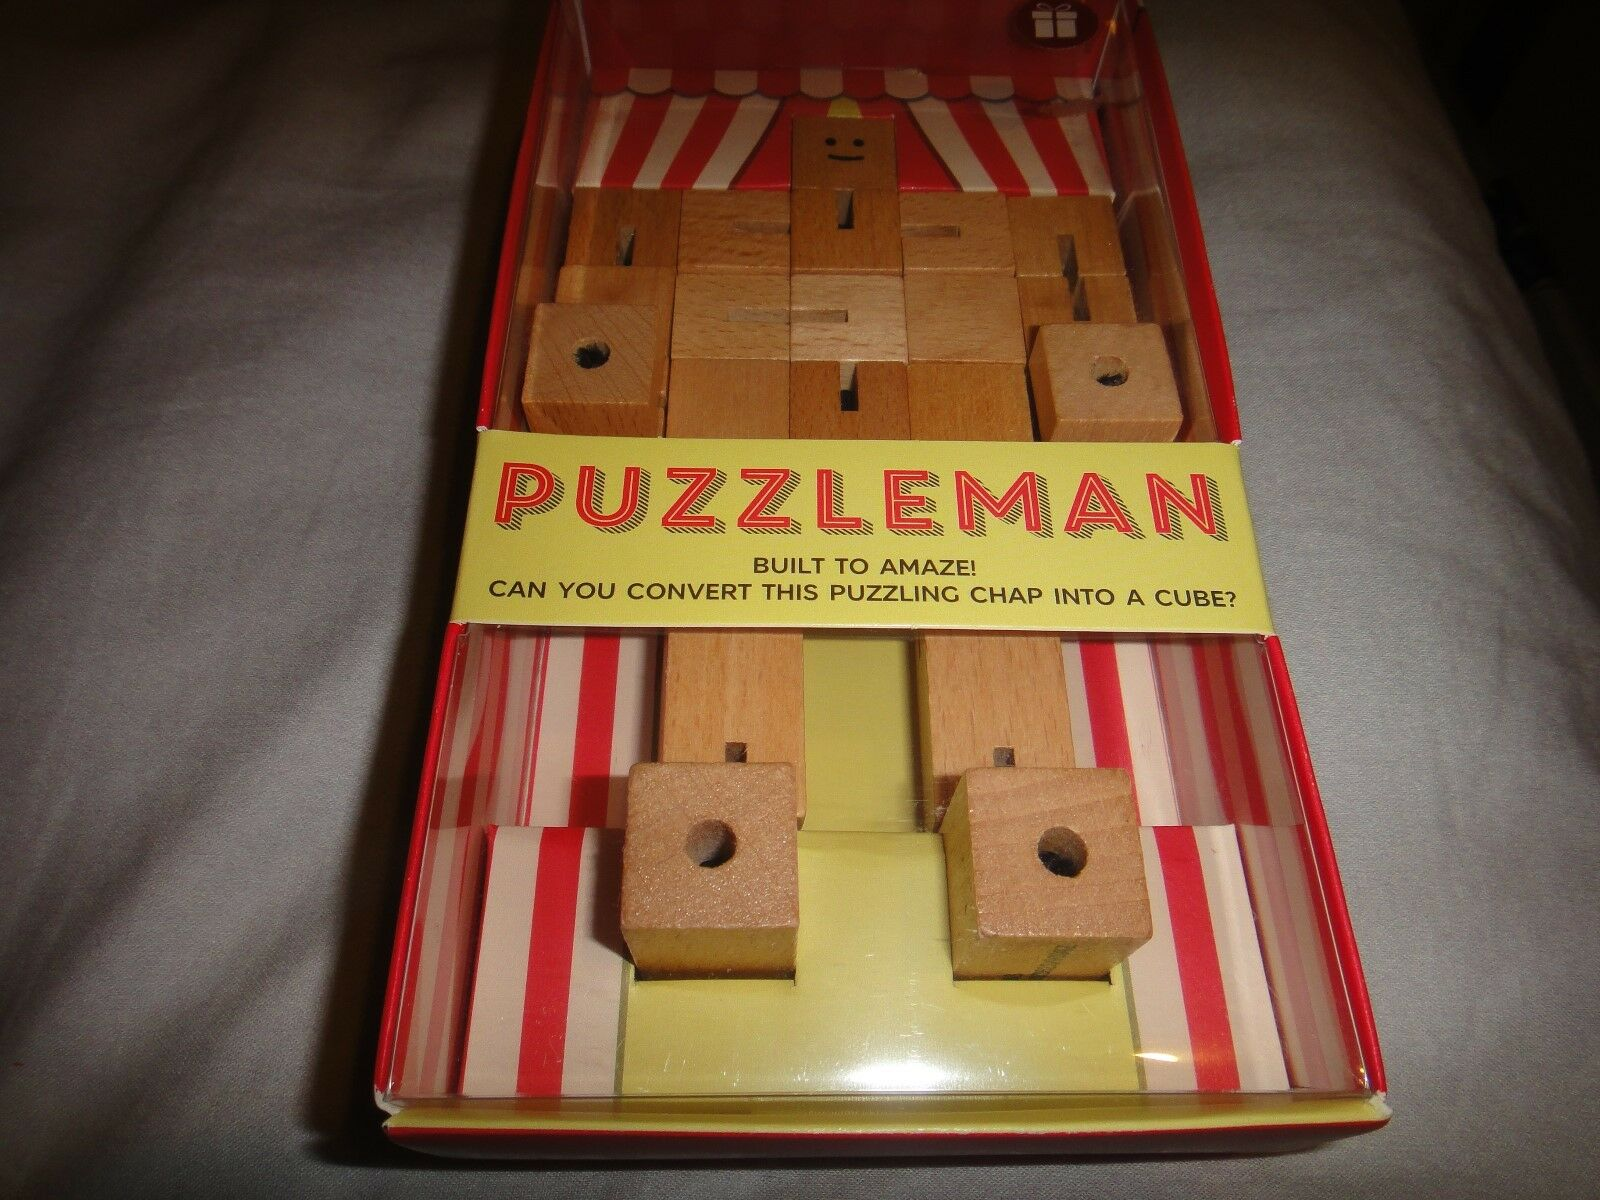 Marks & Spencer Gift Bazaar Wooden Cube Puzzleman (Original Product) RARE